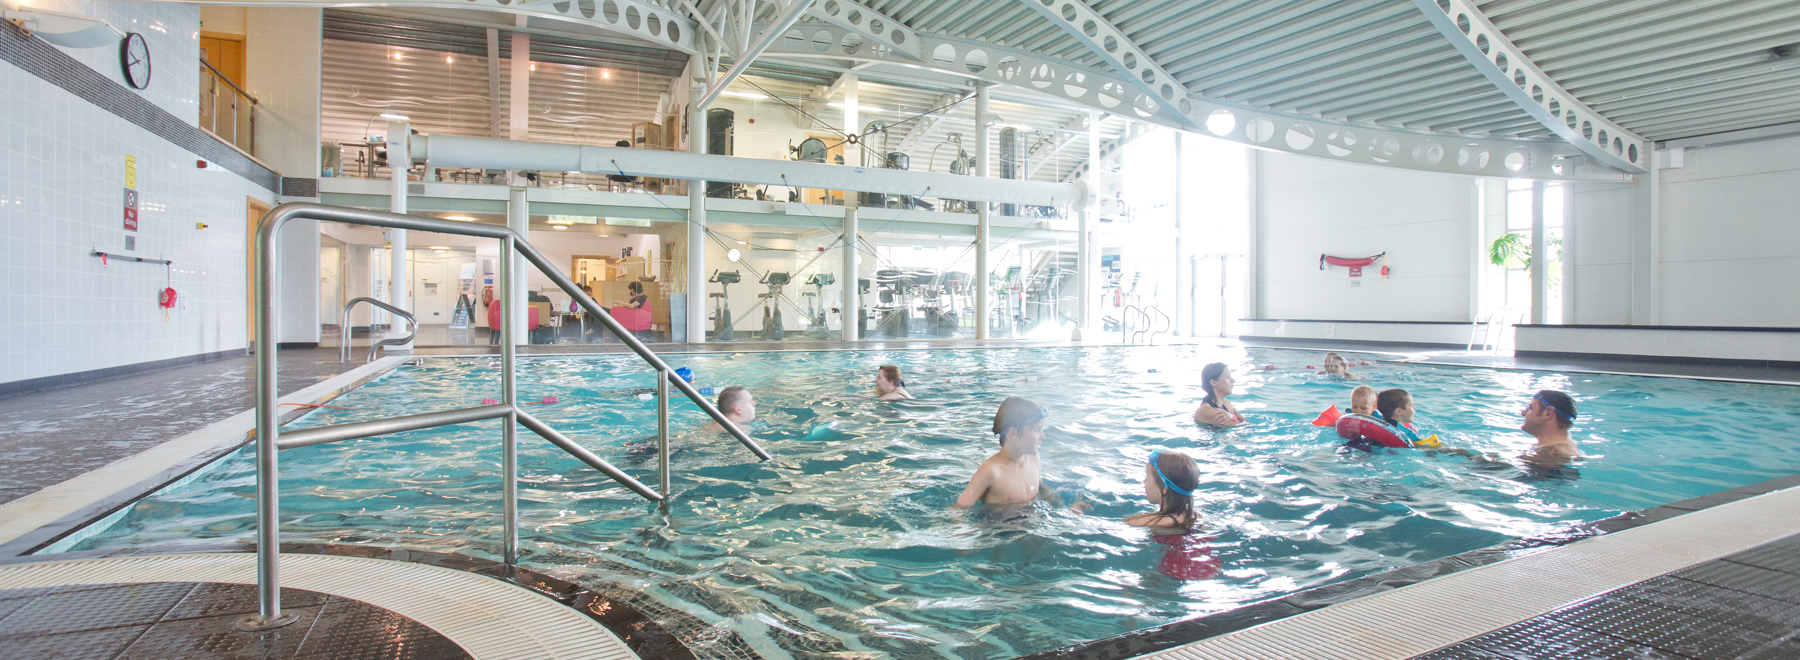 Leisure Centre At South Lakeland Lake District Gym Swimming Pool